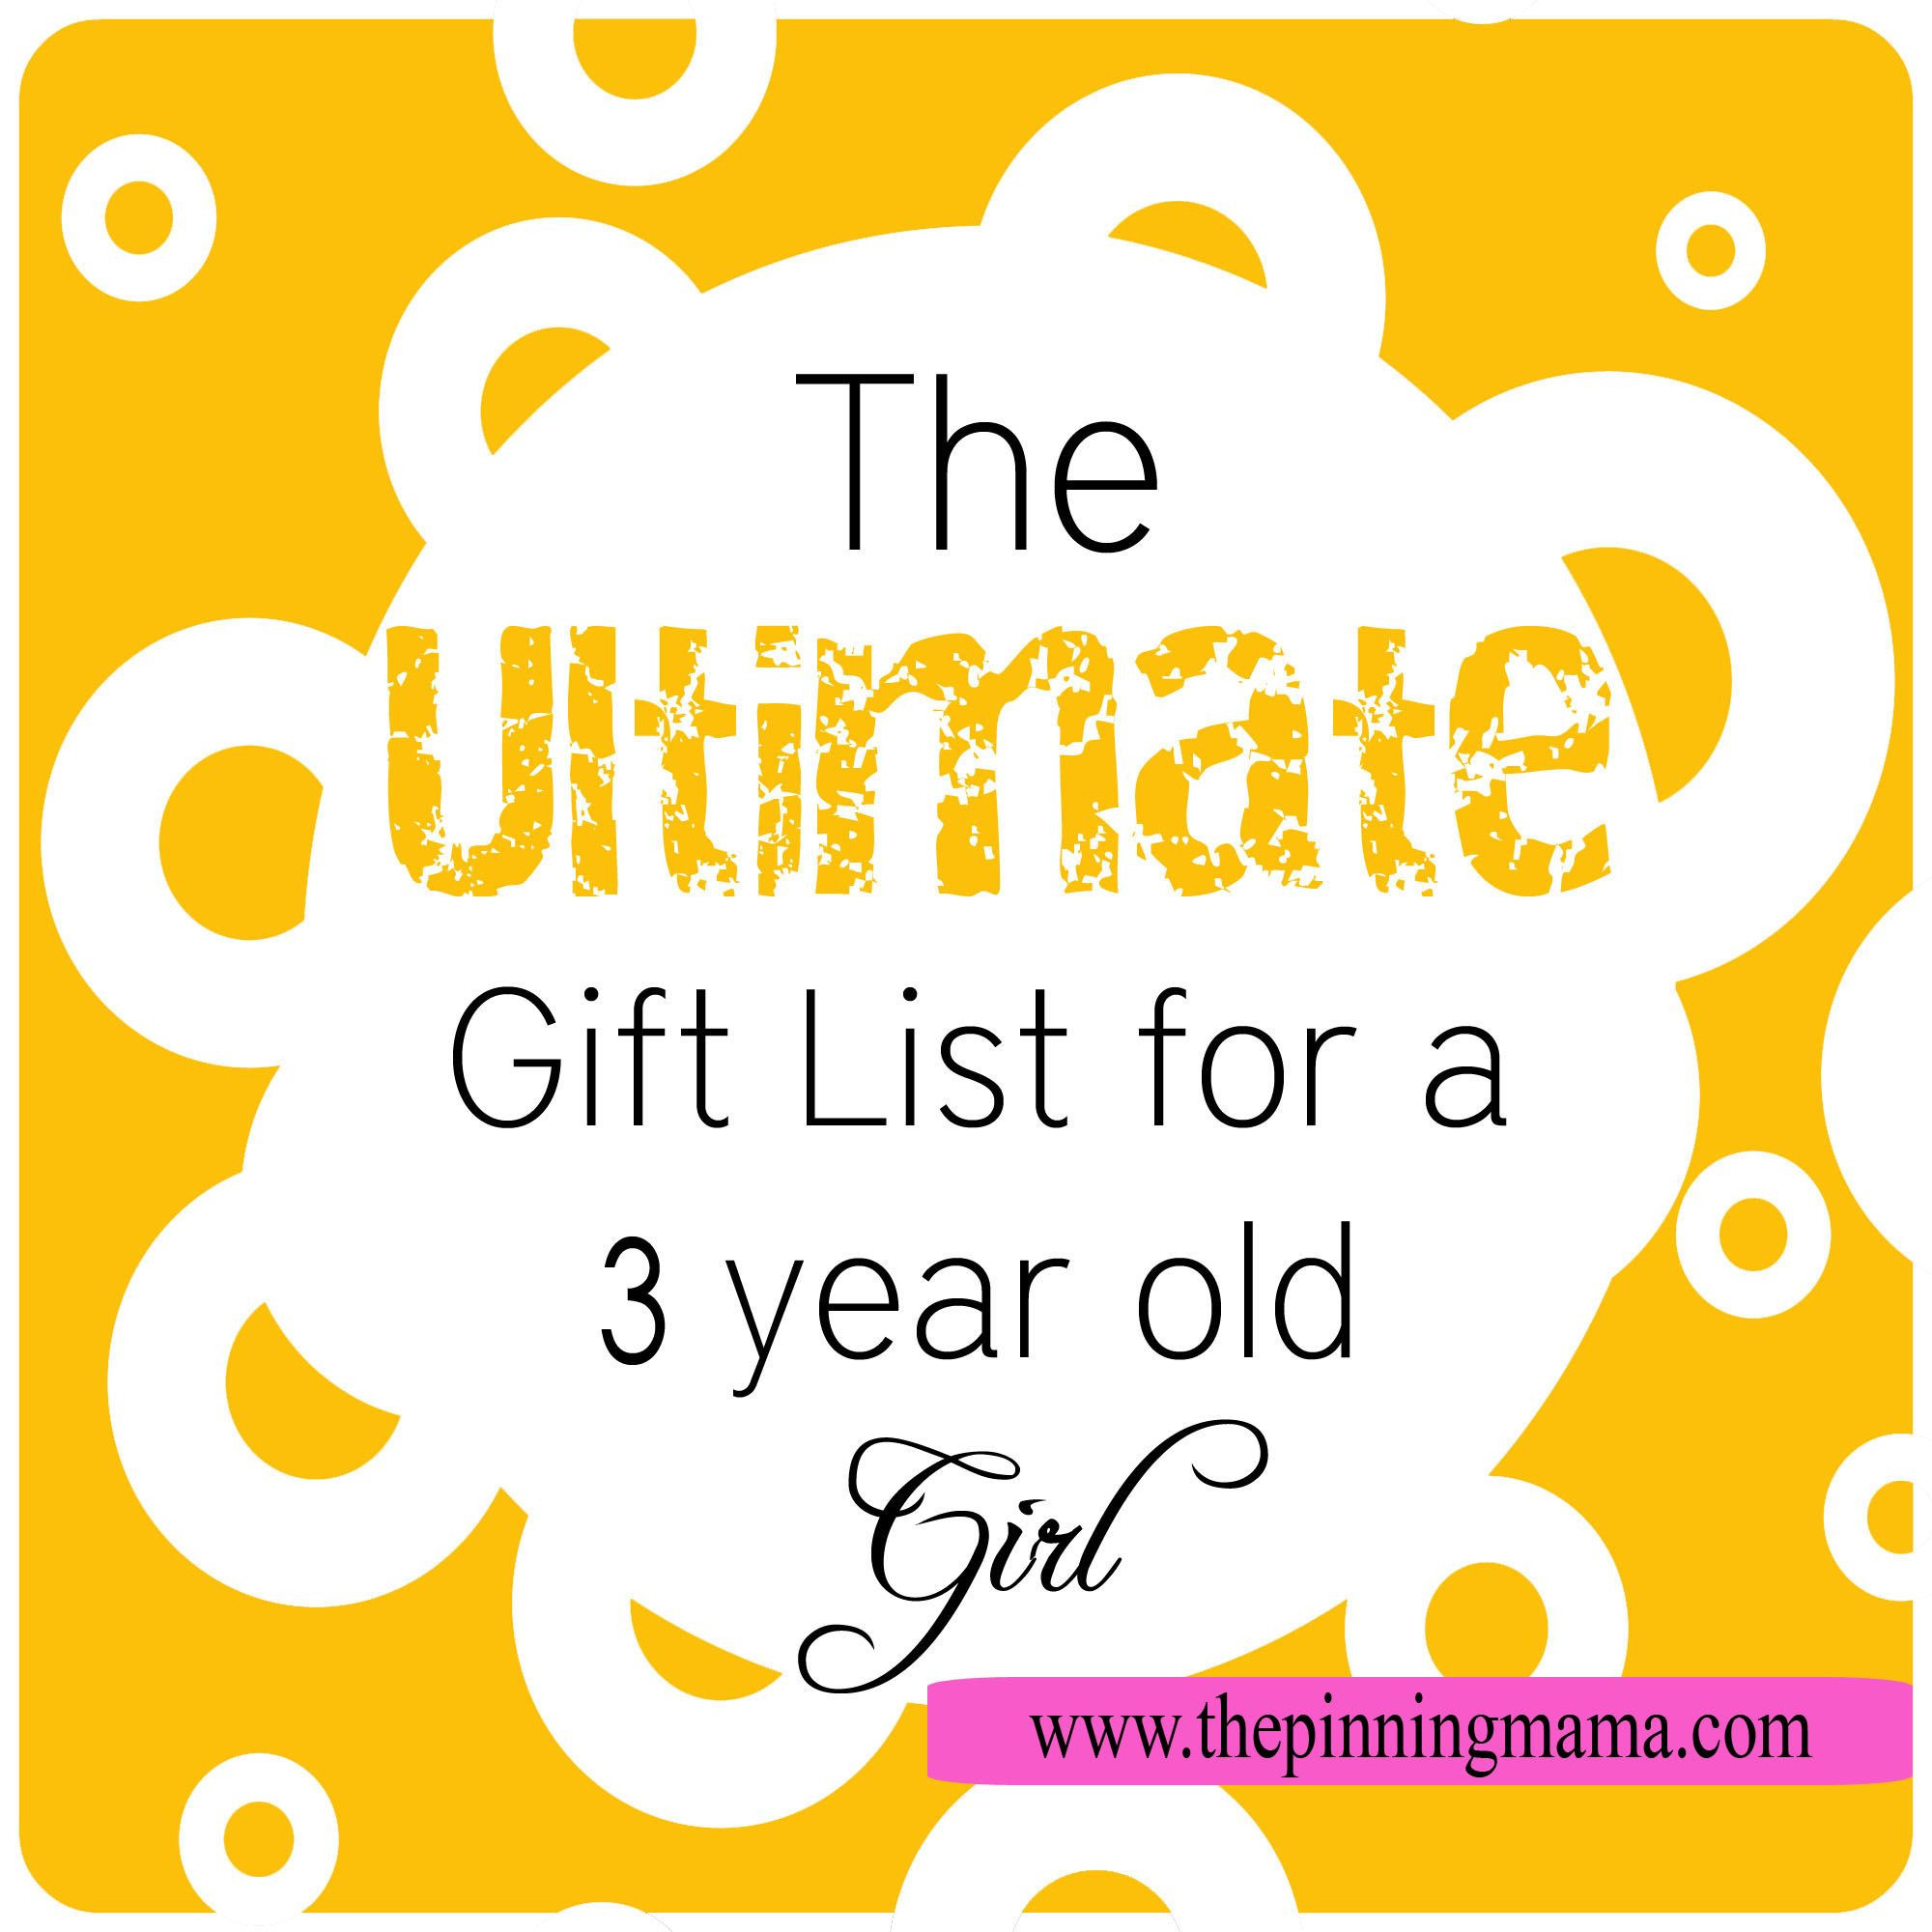 Best ideas about Gift Ideas For 3 Year Old Baby Girl . Save or Pin The Ultimate Gift List for a 3 Year Old Girl Now.